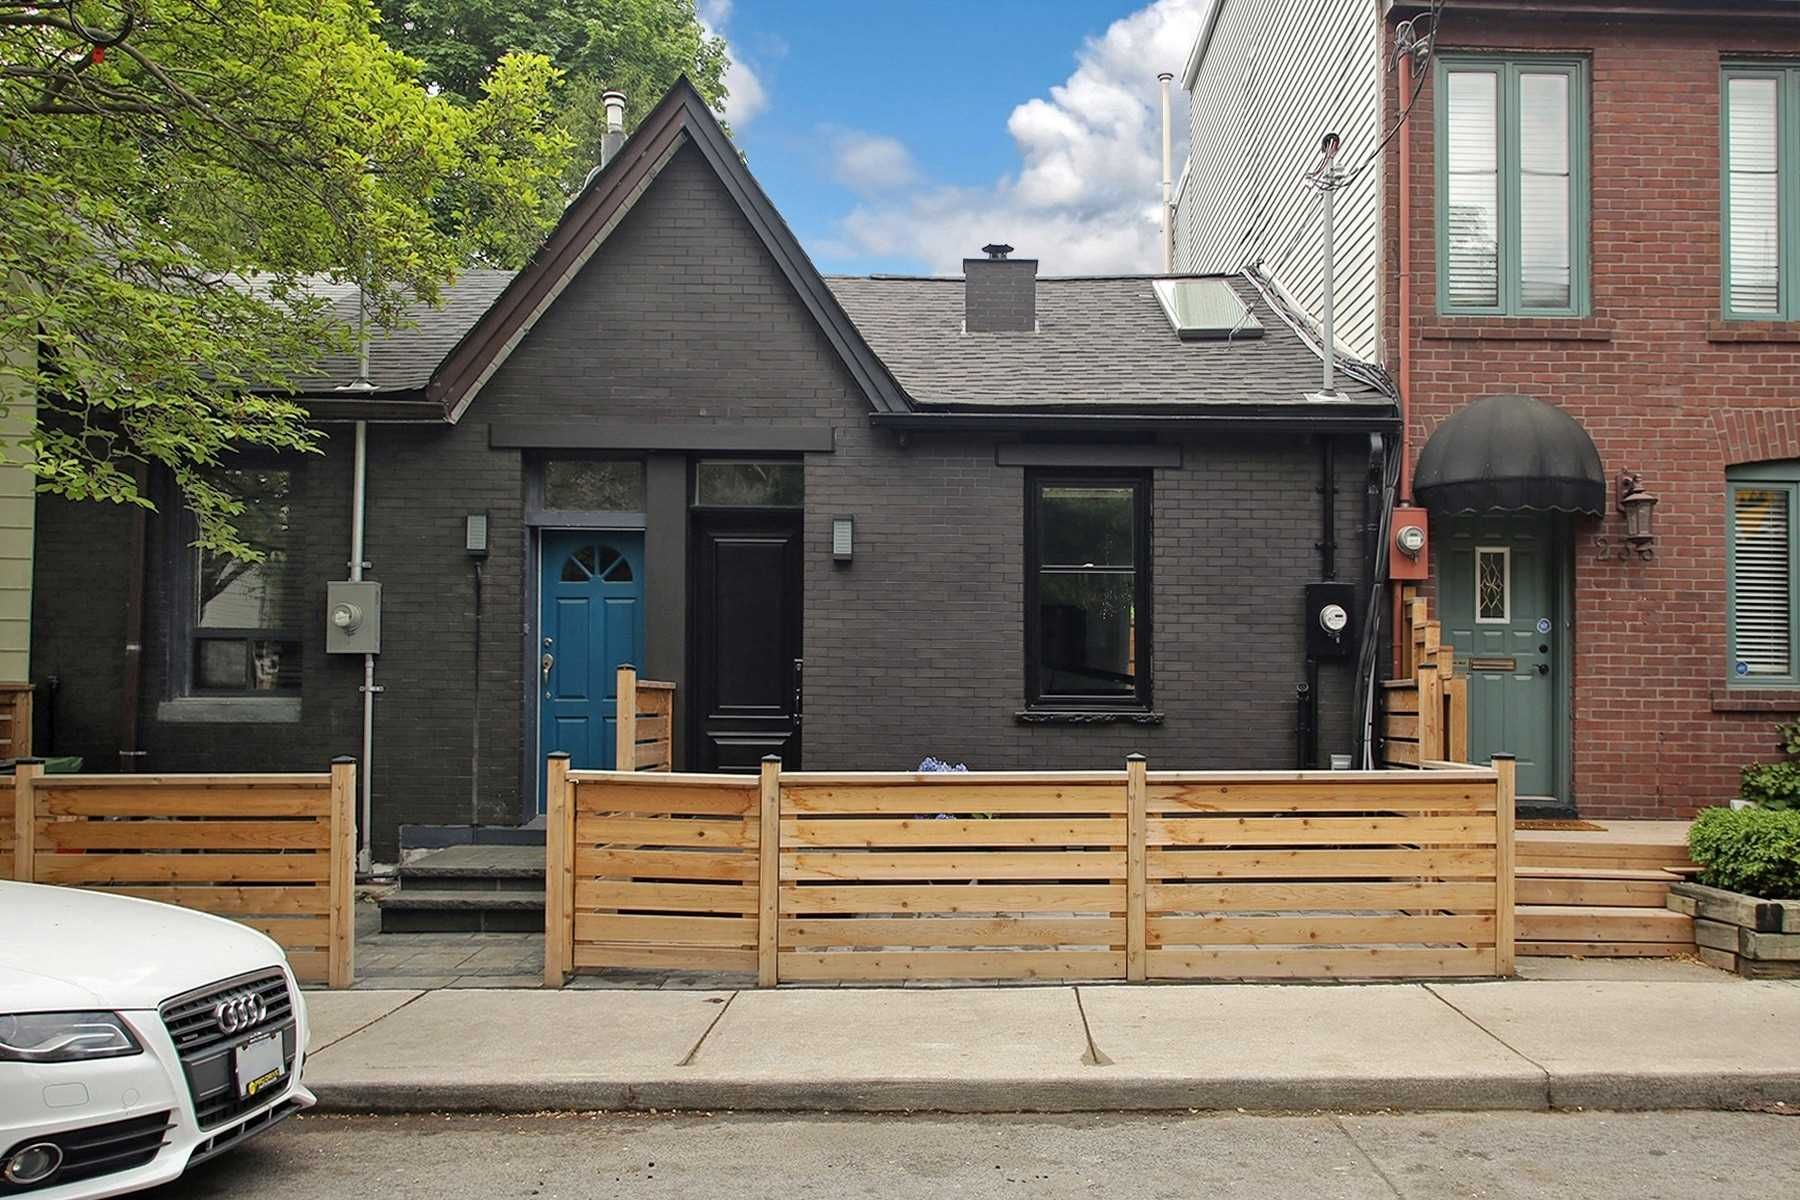 Main Photo: 234 Ontario Street in Toronto: Cabbagetown-South St. James Town House (Bungalow) for sale (Toronto C08)  : MLS®# C5254466